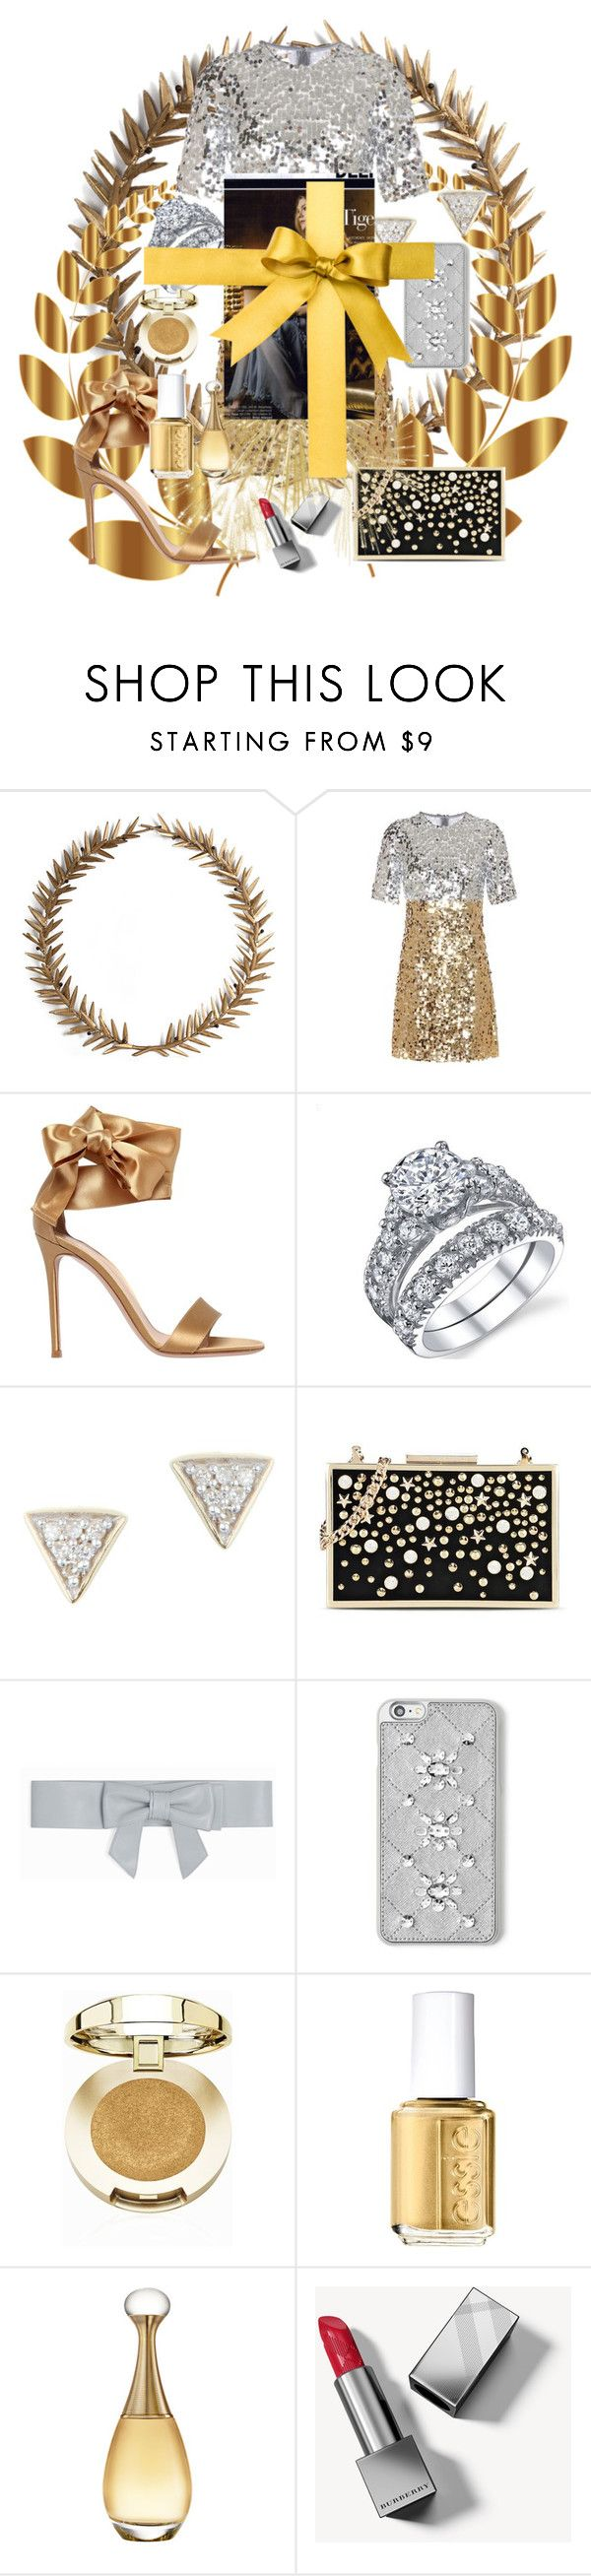 """""""Untitled #2774"""" by princhelle-mack ❤ liked on Polyvore featuring Bliss Studio, Laurel Wreath Collection, Dolce&Gabbana, Gianvito Rossi, Adina Reyter, Karl Lagerfeld, Paul & Joe, MICHAEL Michael Kors, Milani and Essie"""